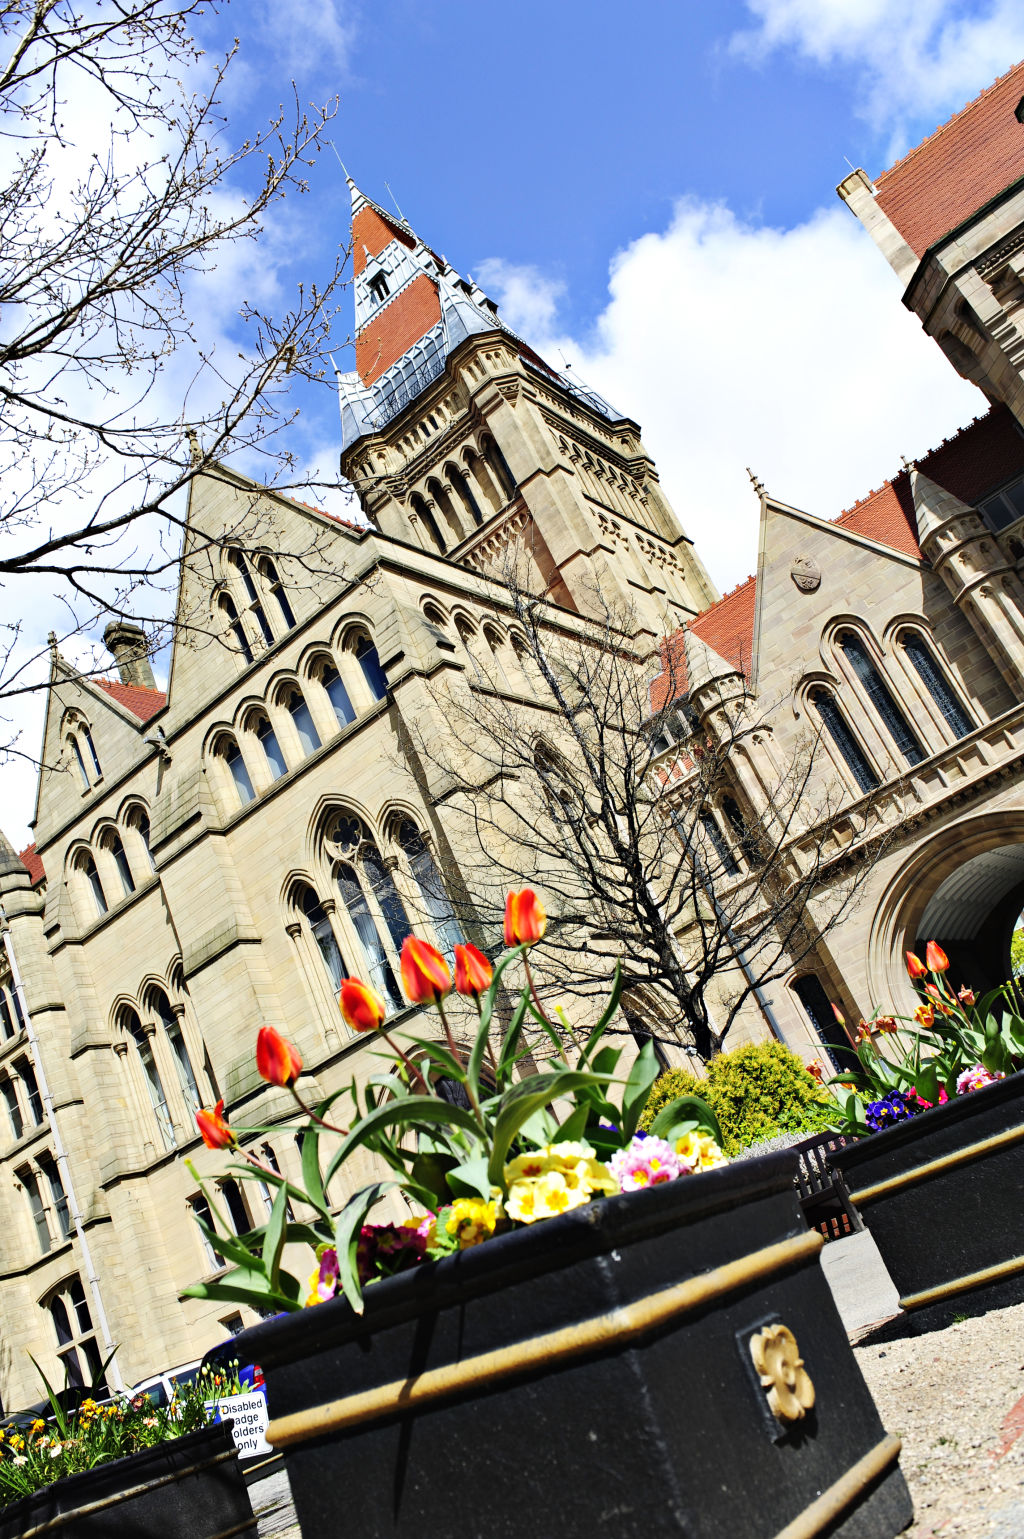 Whitworth Building at The University of Manchester